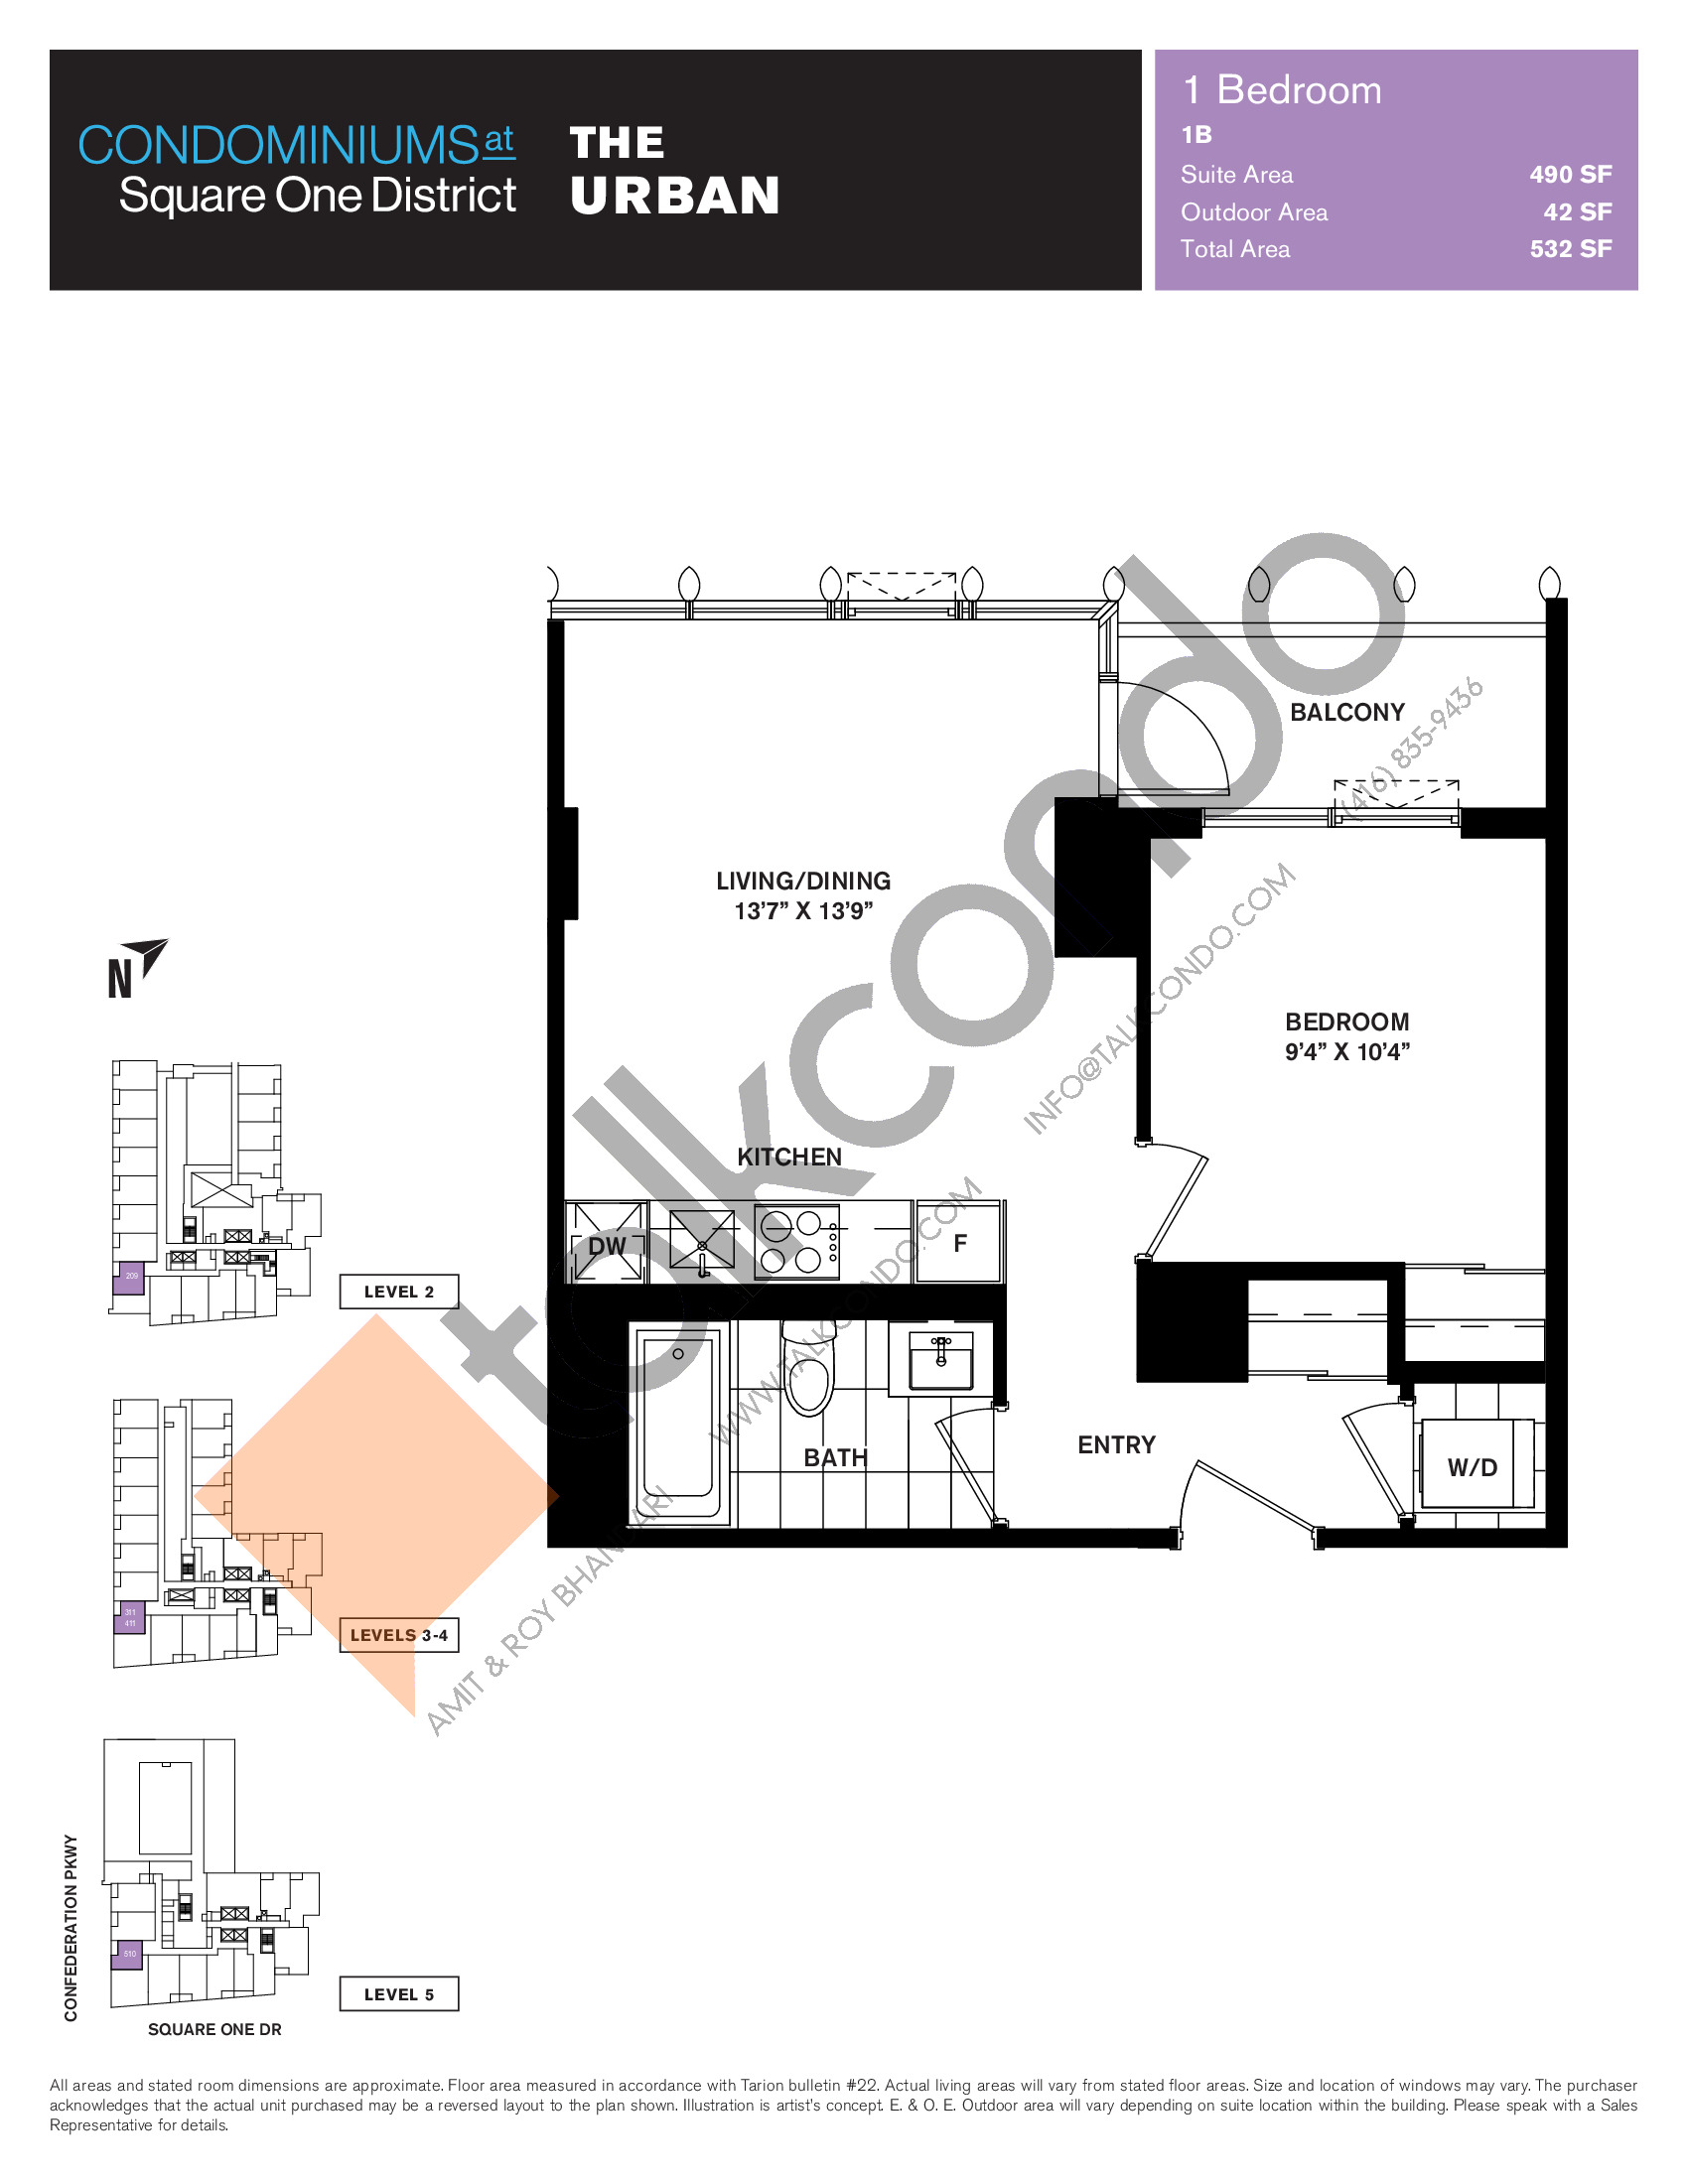 The Urban Floor Plan at Condominiums at Square One District - 490 sq.ft